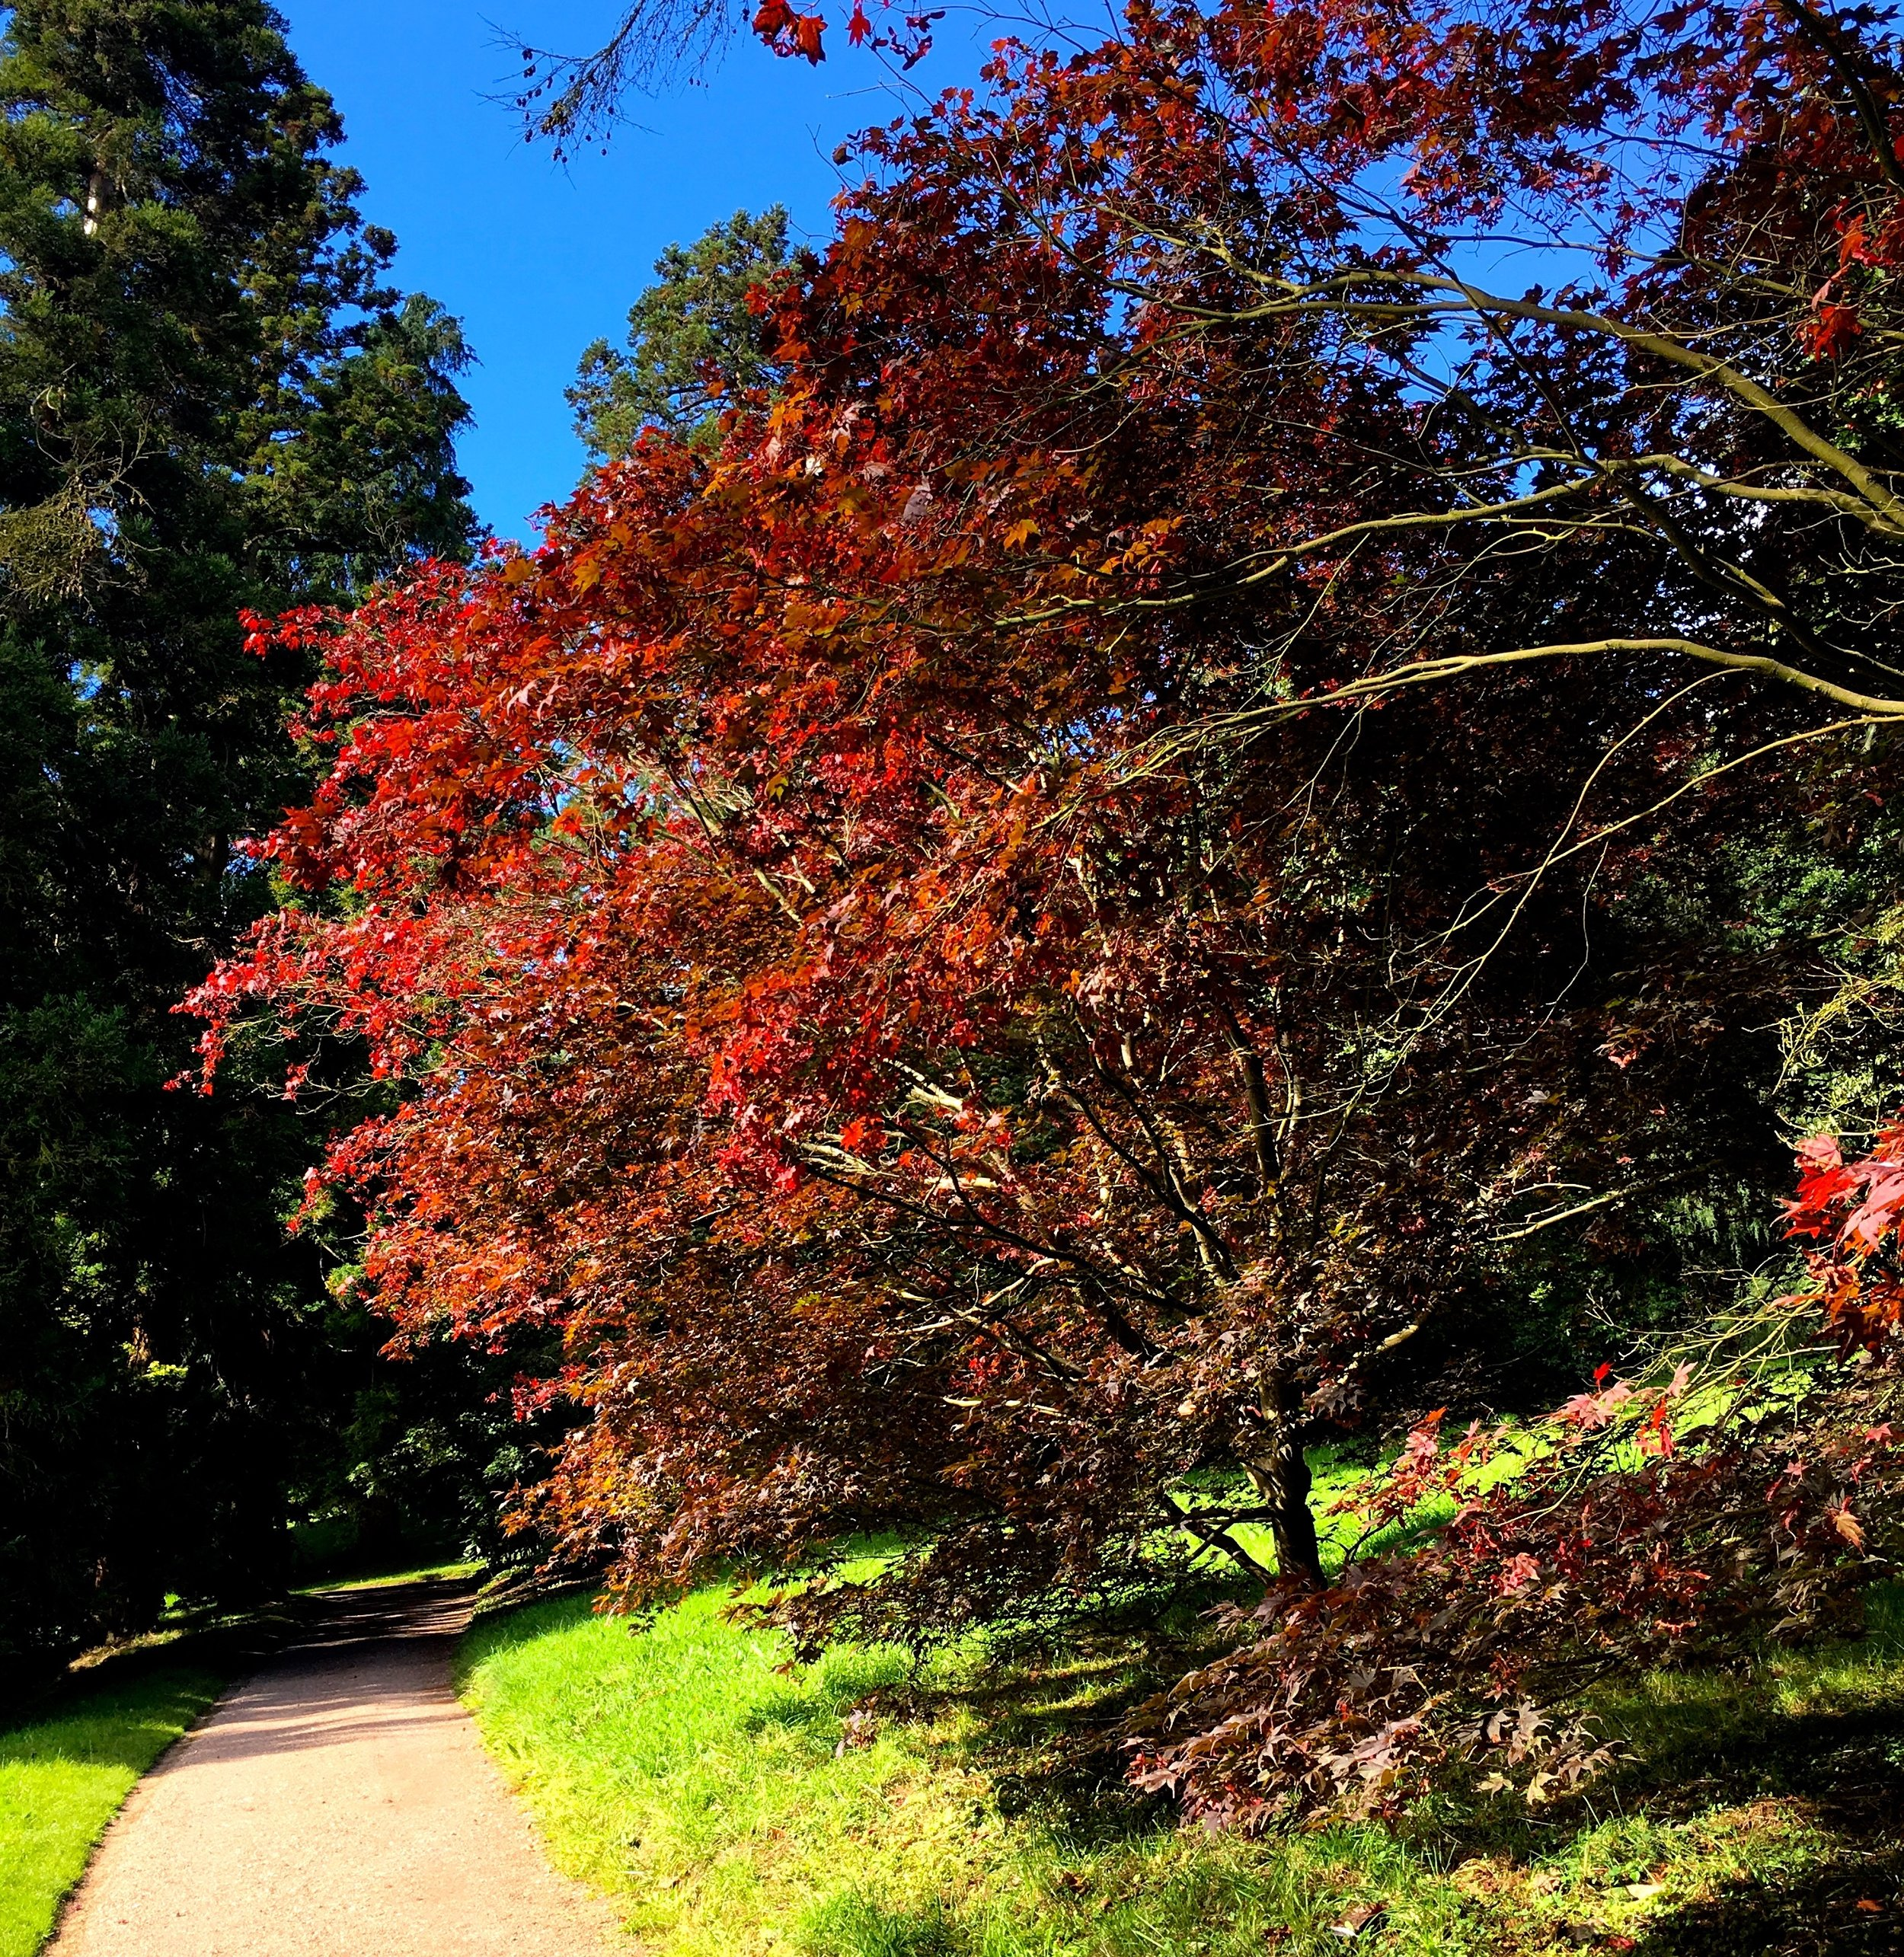 Colourful autumnal trees at Killerton